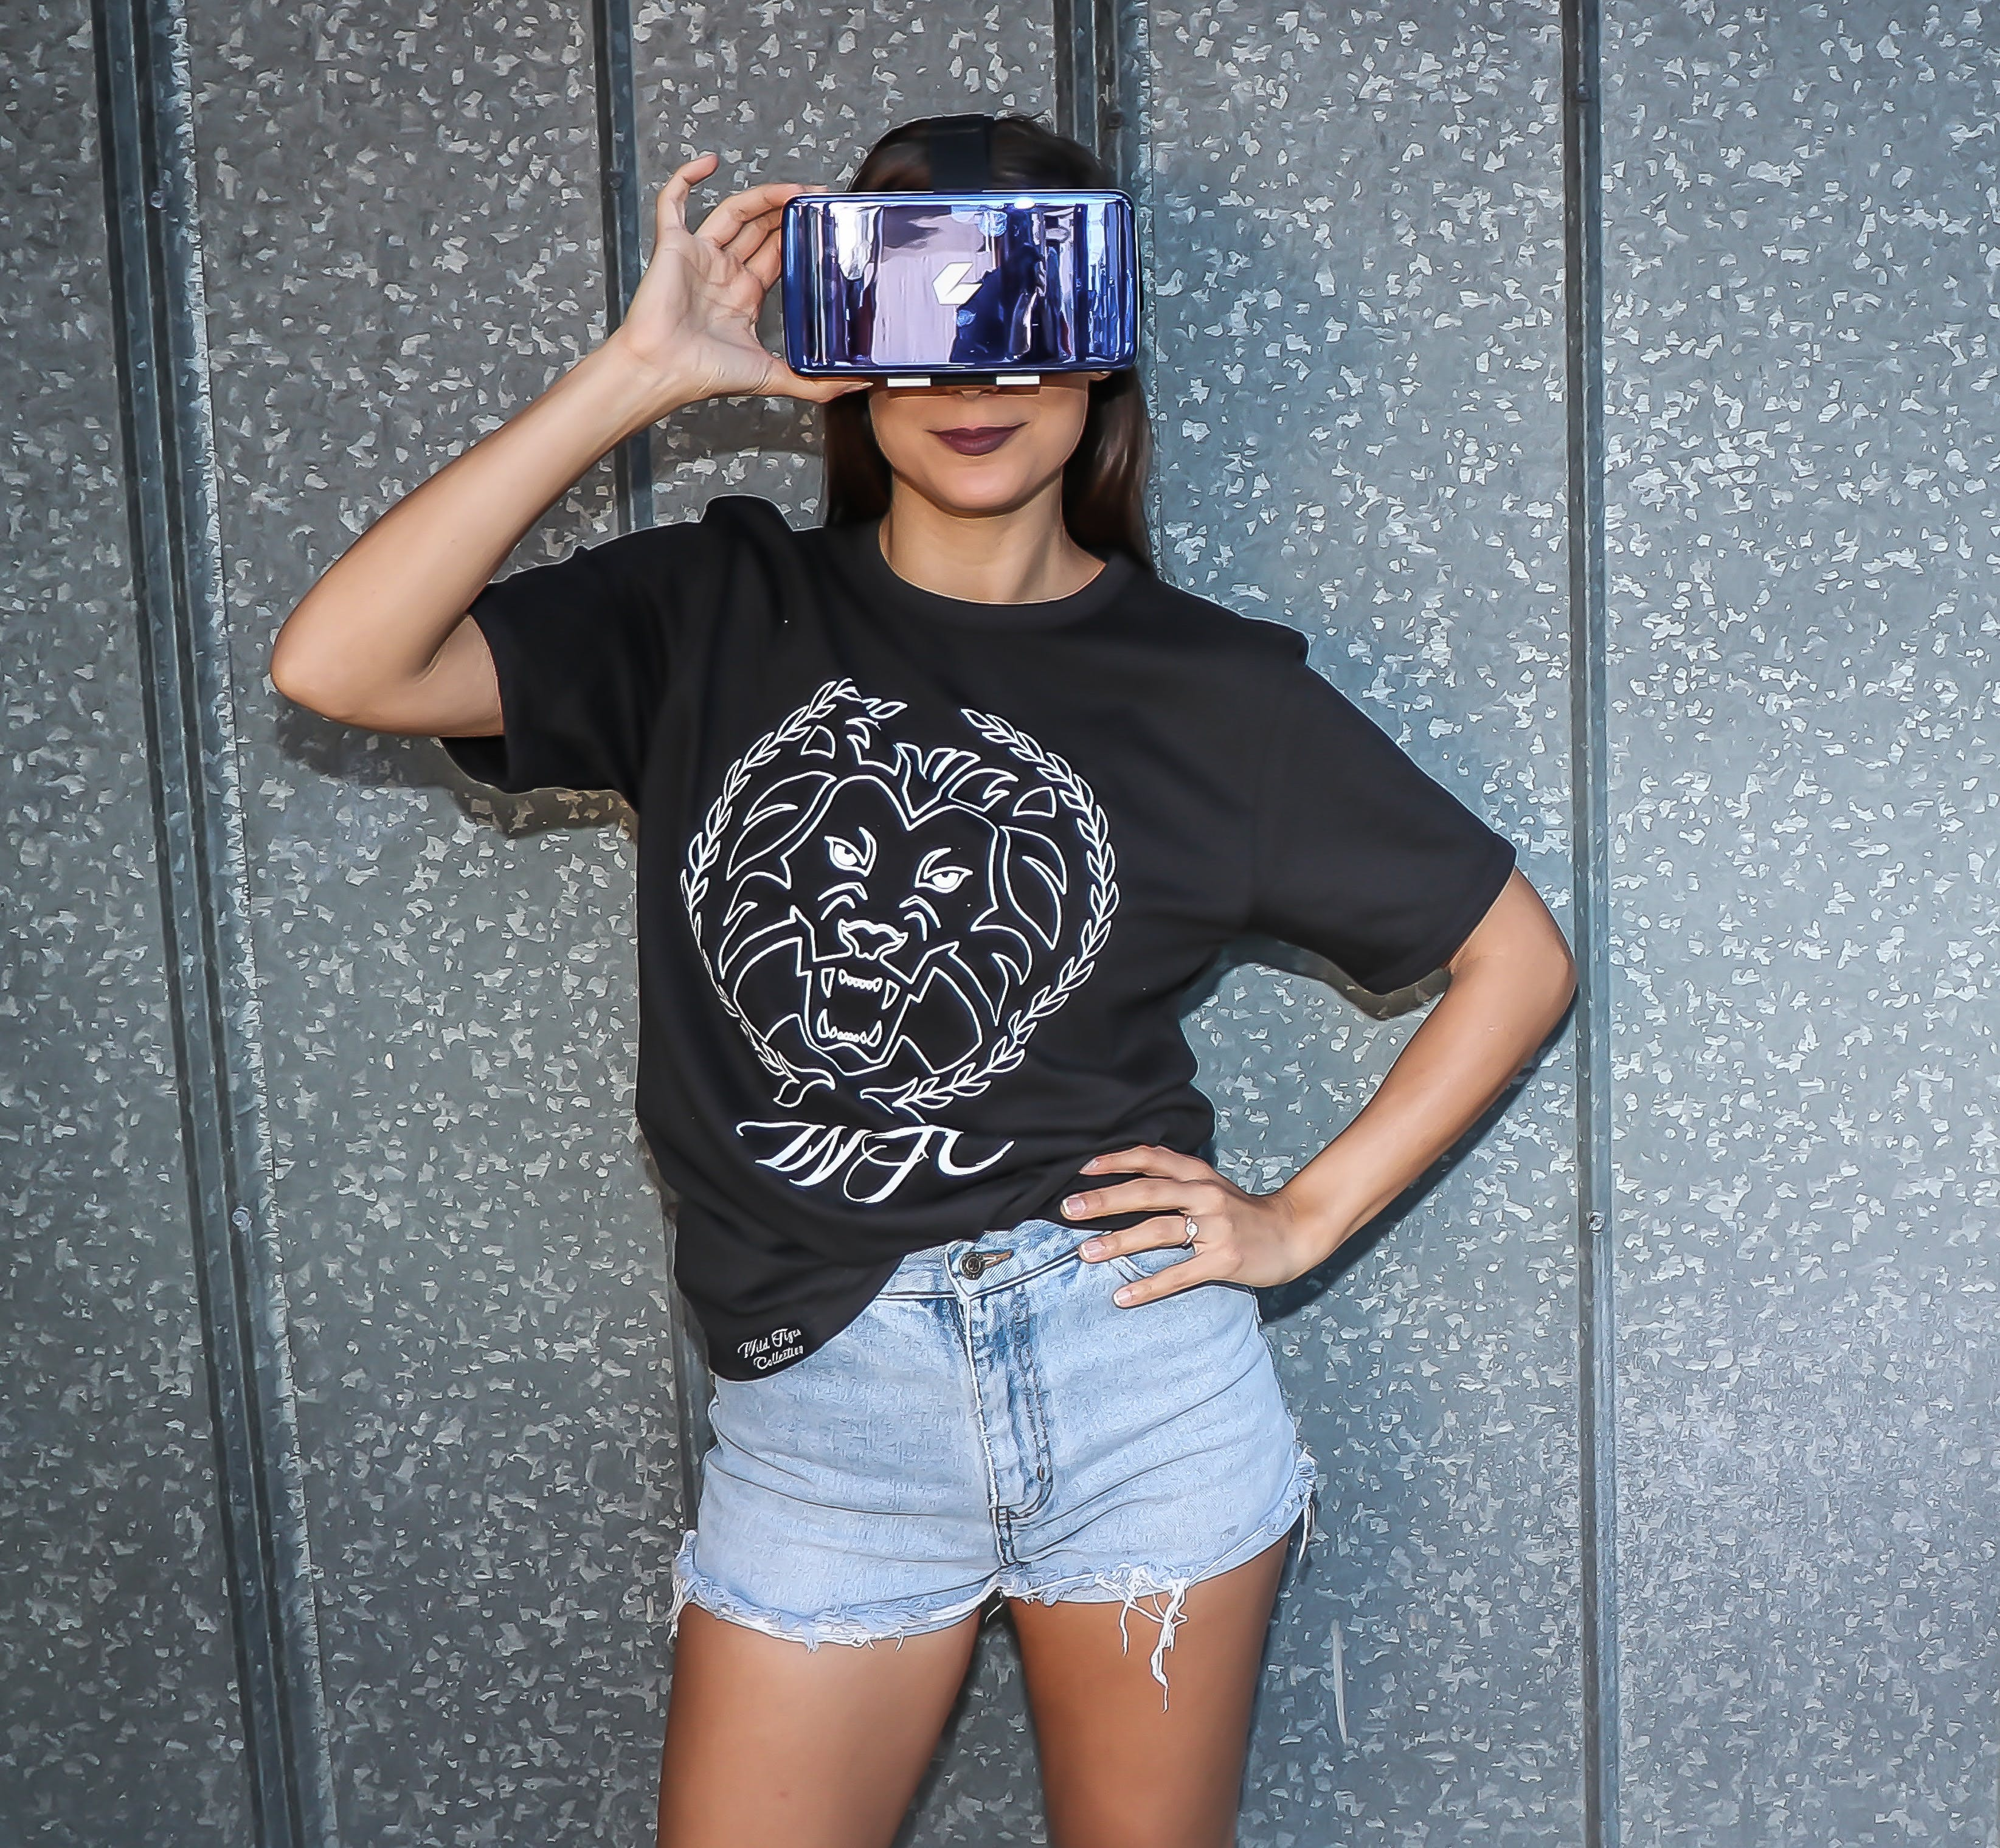 Woman in Black Crew-neck Top Standing Near Wall